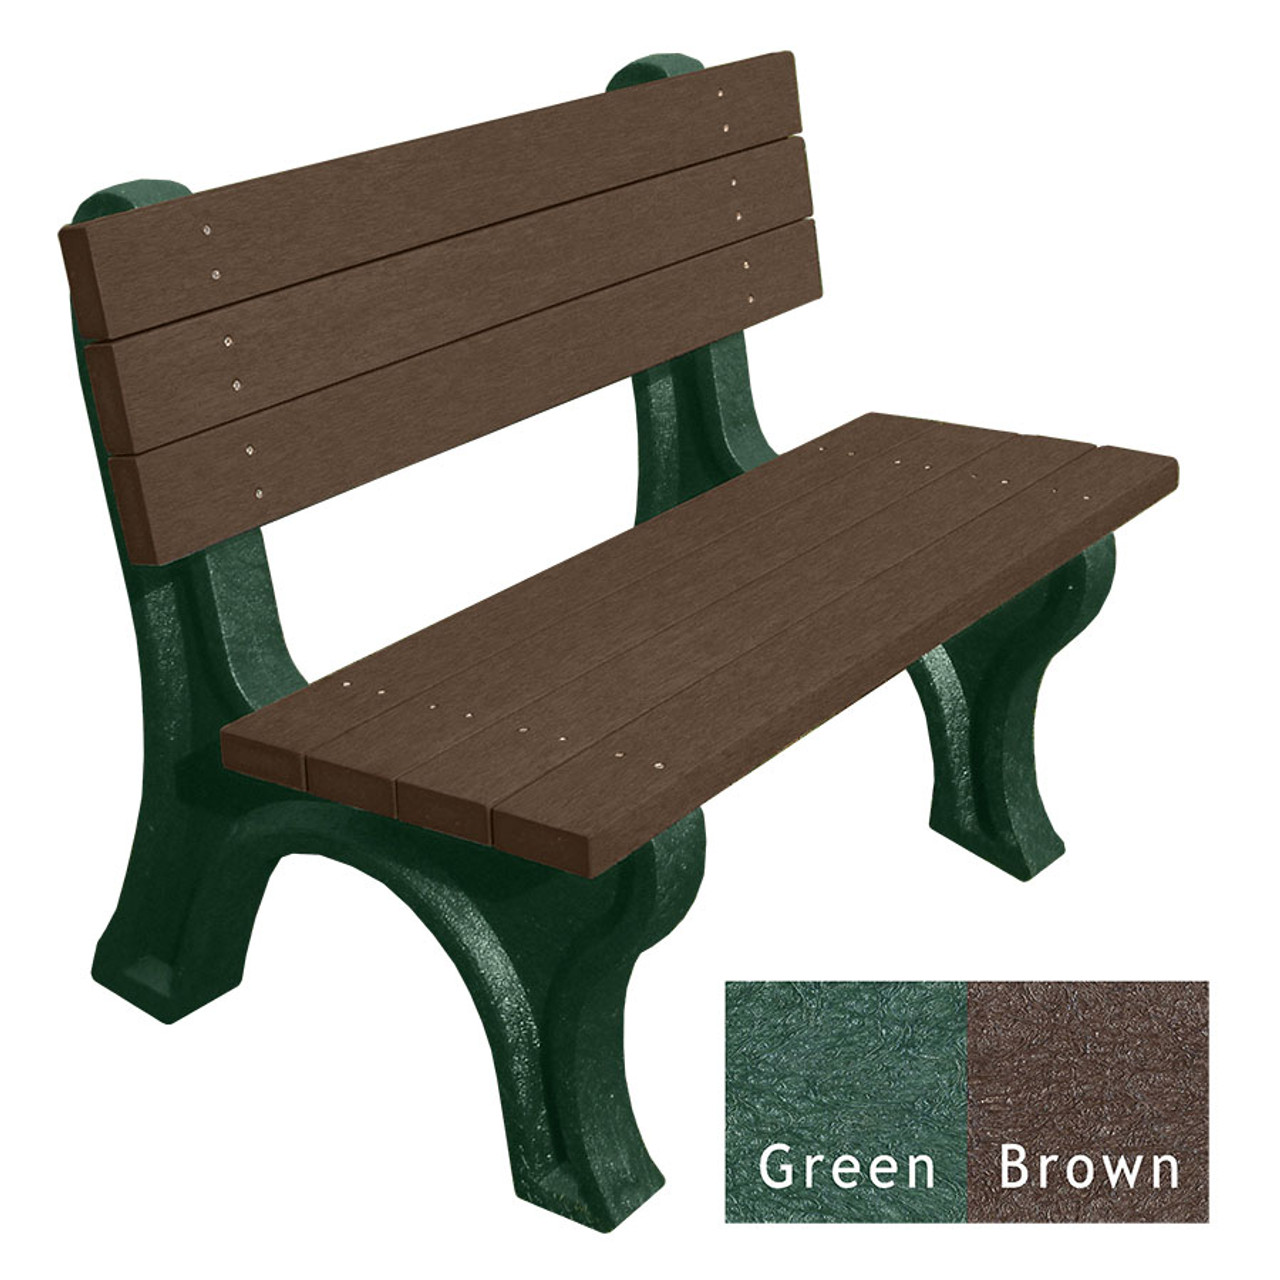 Green and Brown